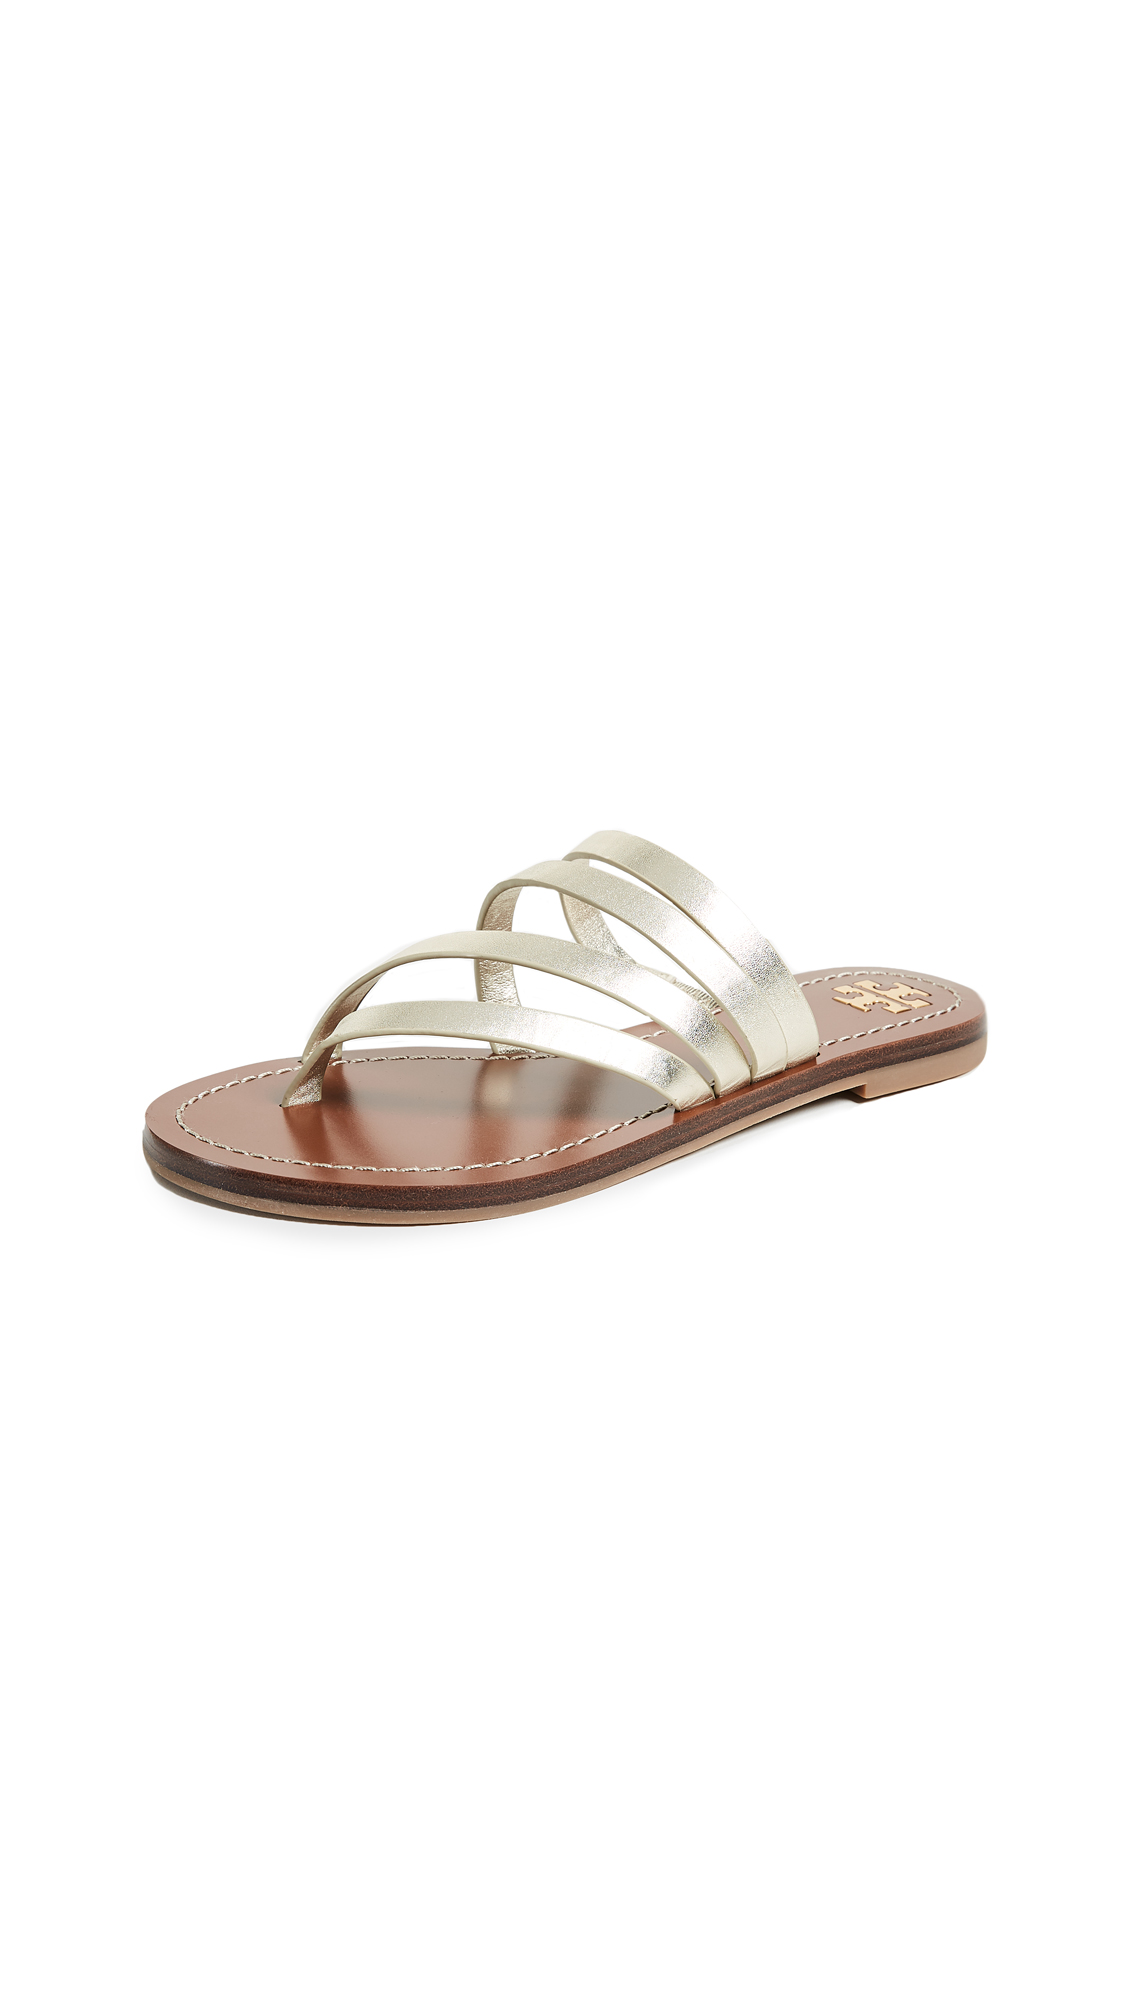 Tory Burch Patos Flat Sandals - Spark Gold